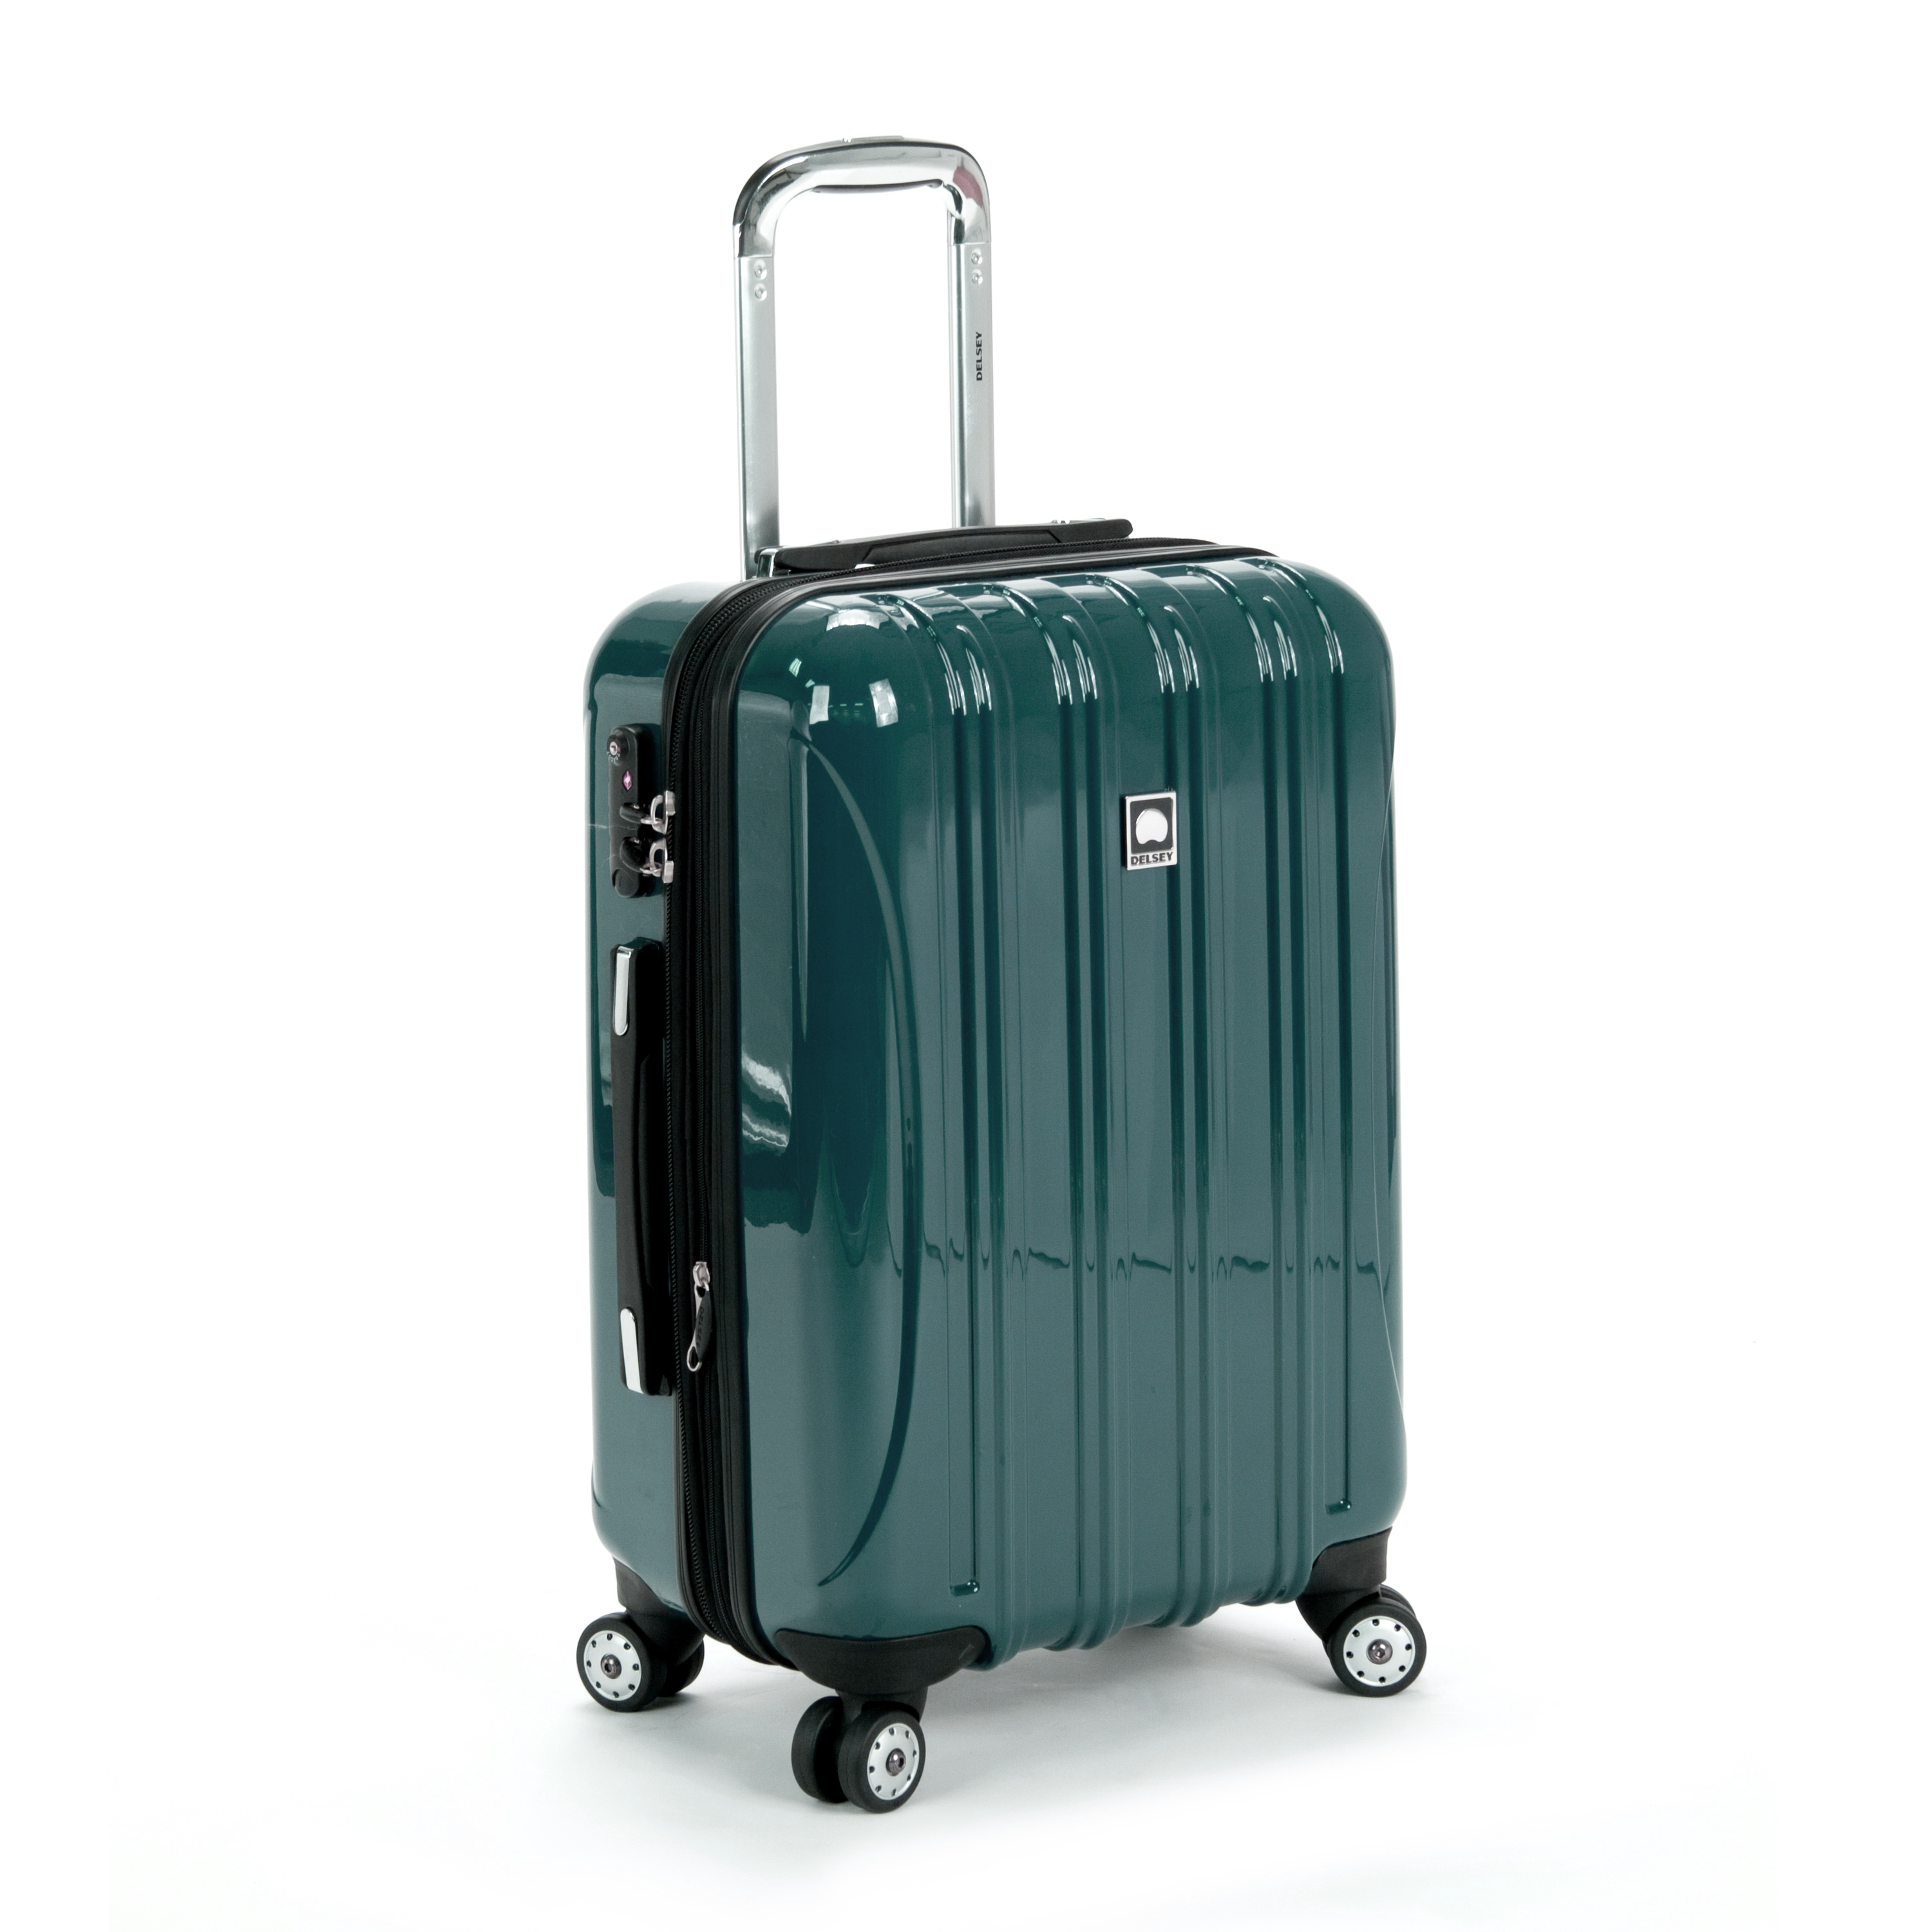 delsey luggage helium aero 2 piece spinner luggage set 21 and 25 ebay. Black Bedroom Furniture Sets. Home Design Ideas